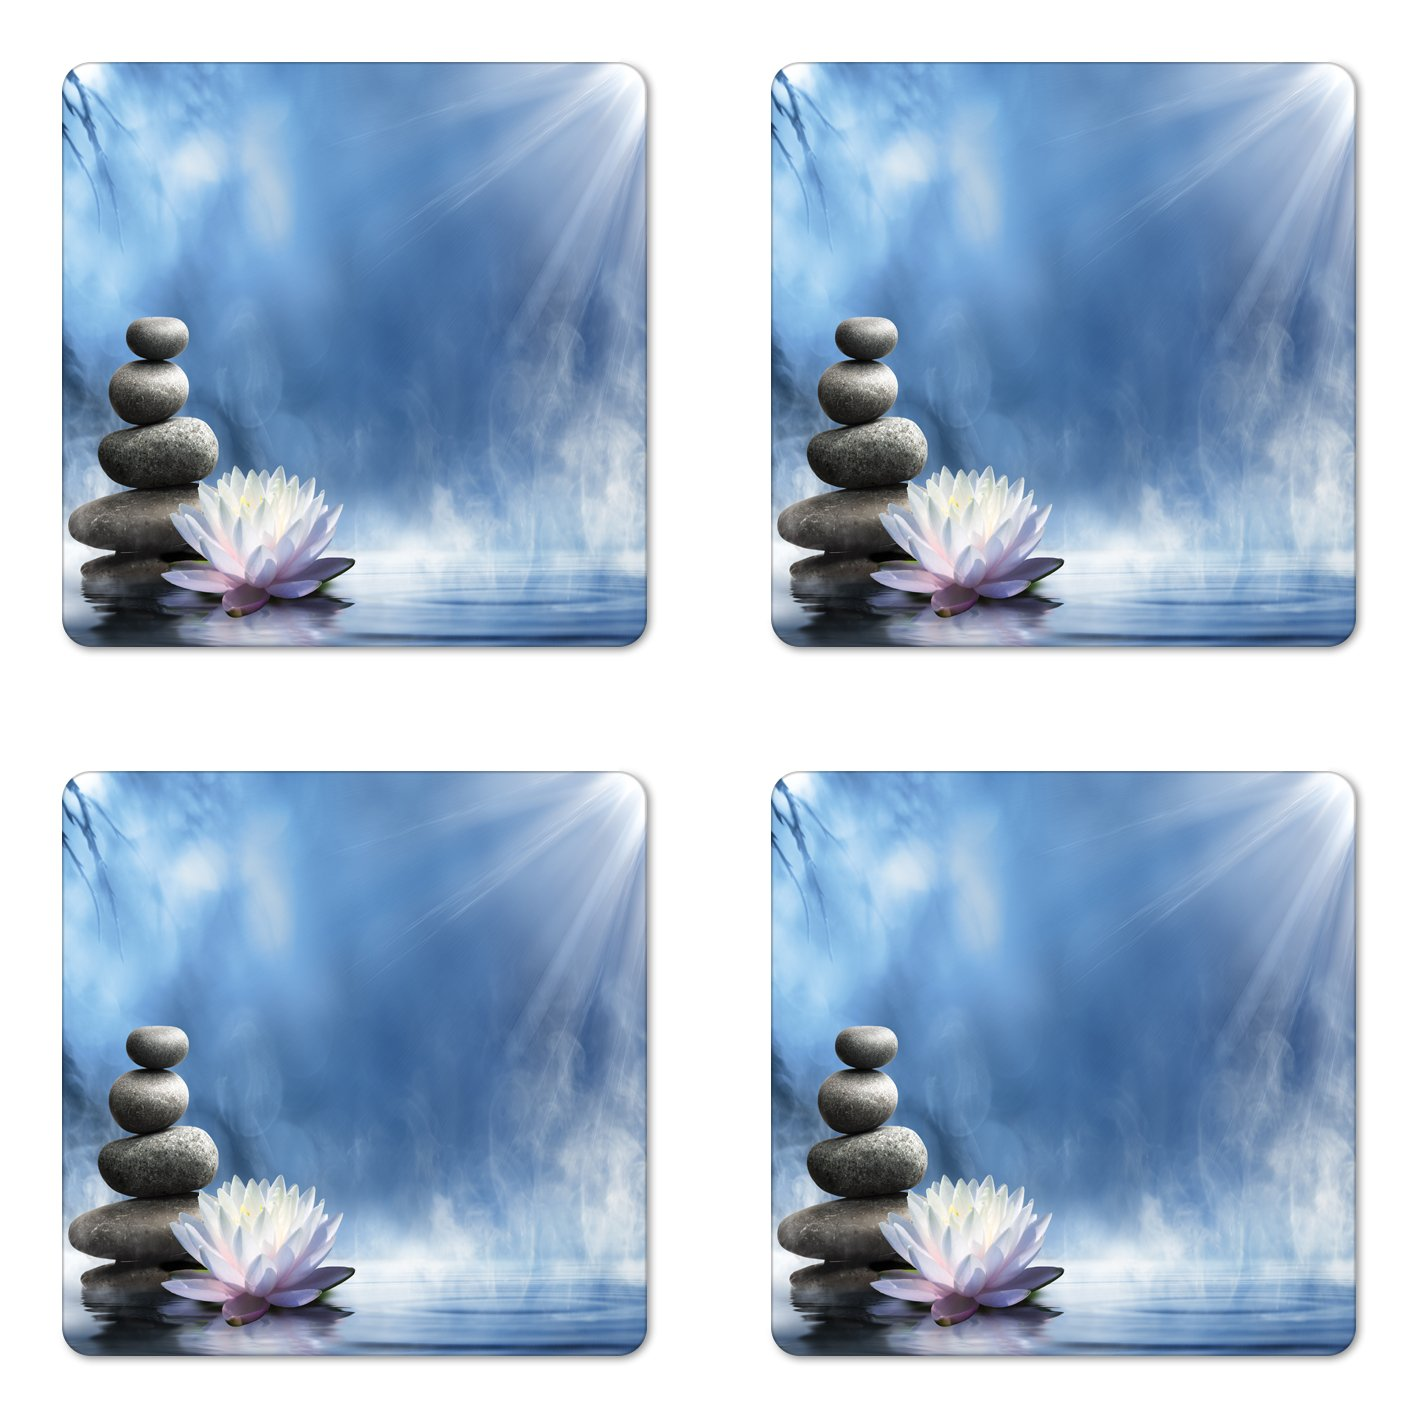 Lunarable Spa Coaster Set of Four, Purity of The Zen Massage Magic Lily Stones Sunbeams Spirituality and Serenity Theme, Square Hardboard Gloss Coasters for Drinks, Blue White